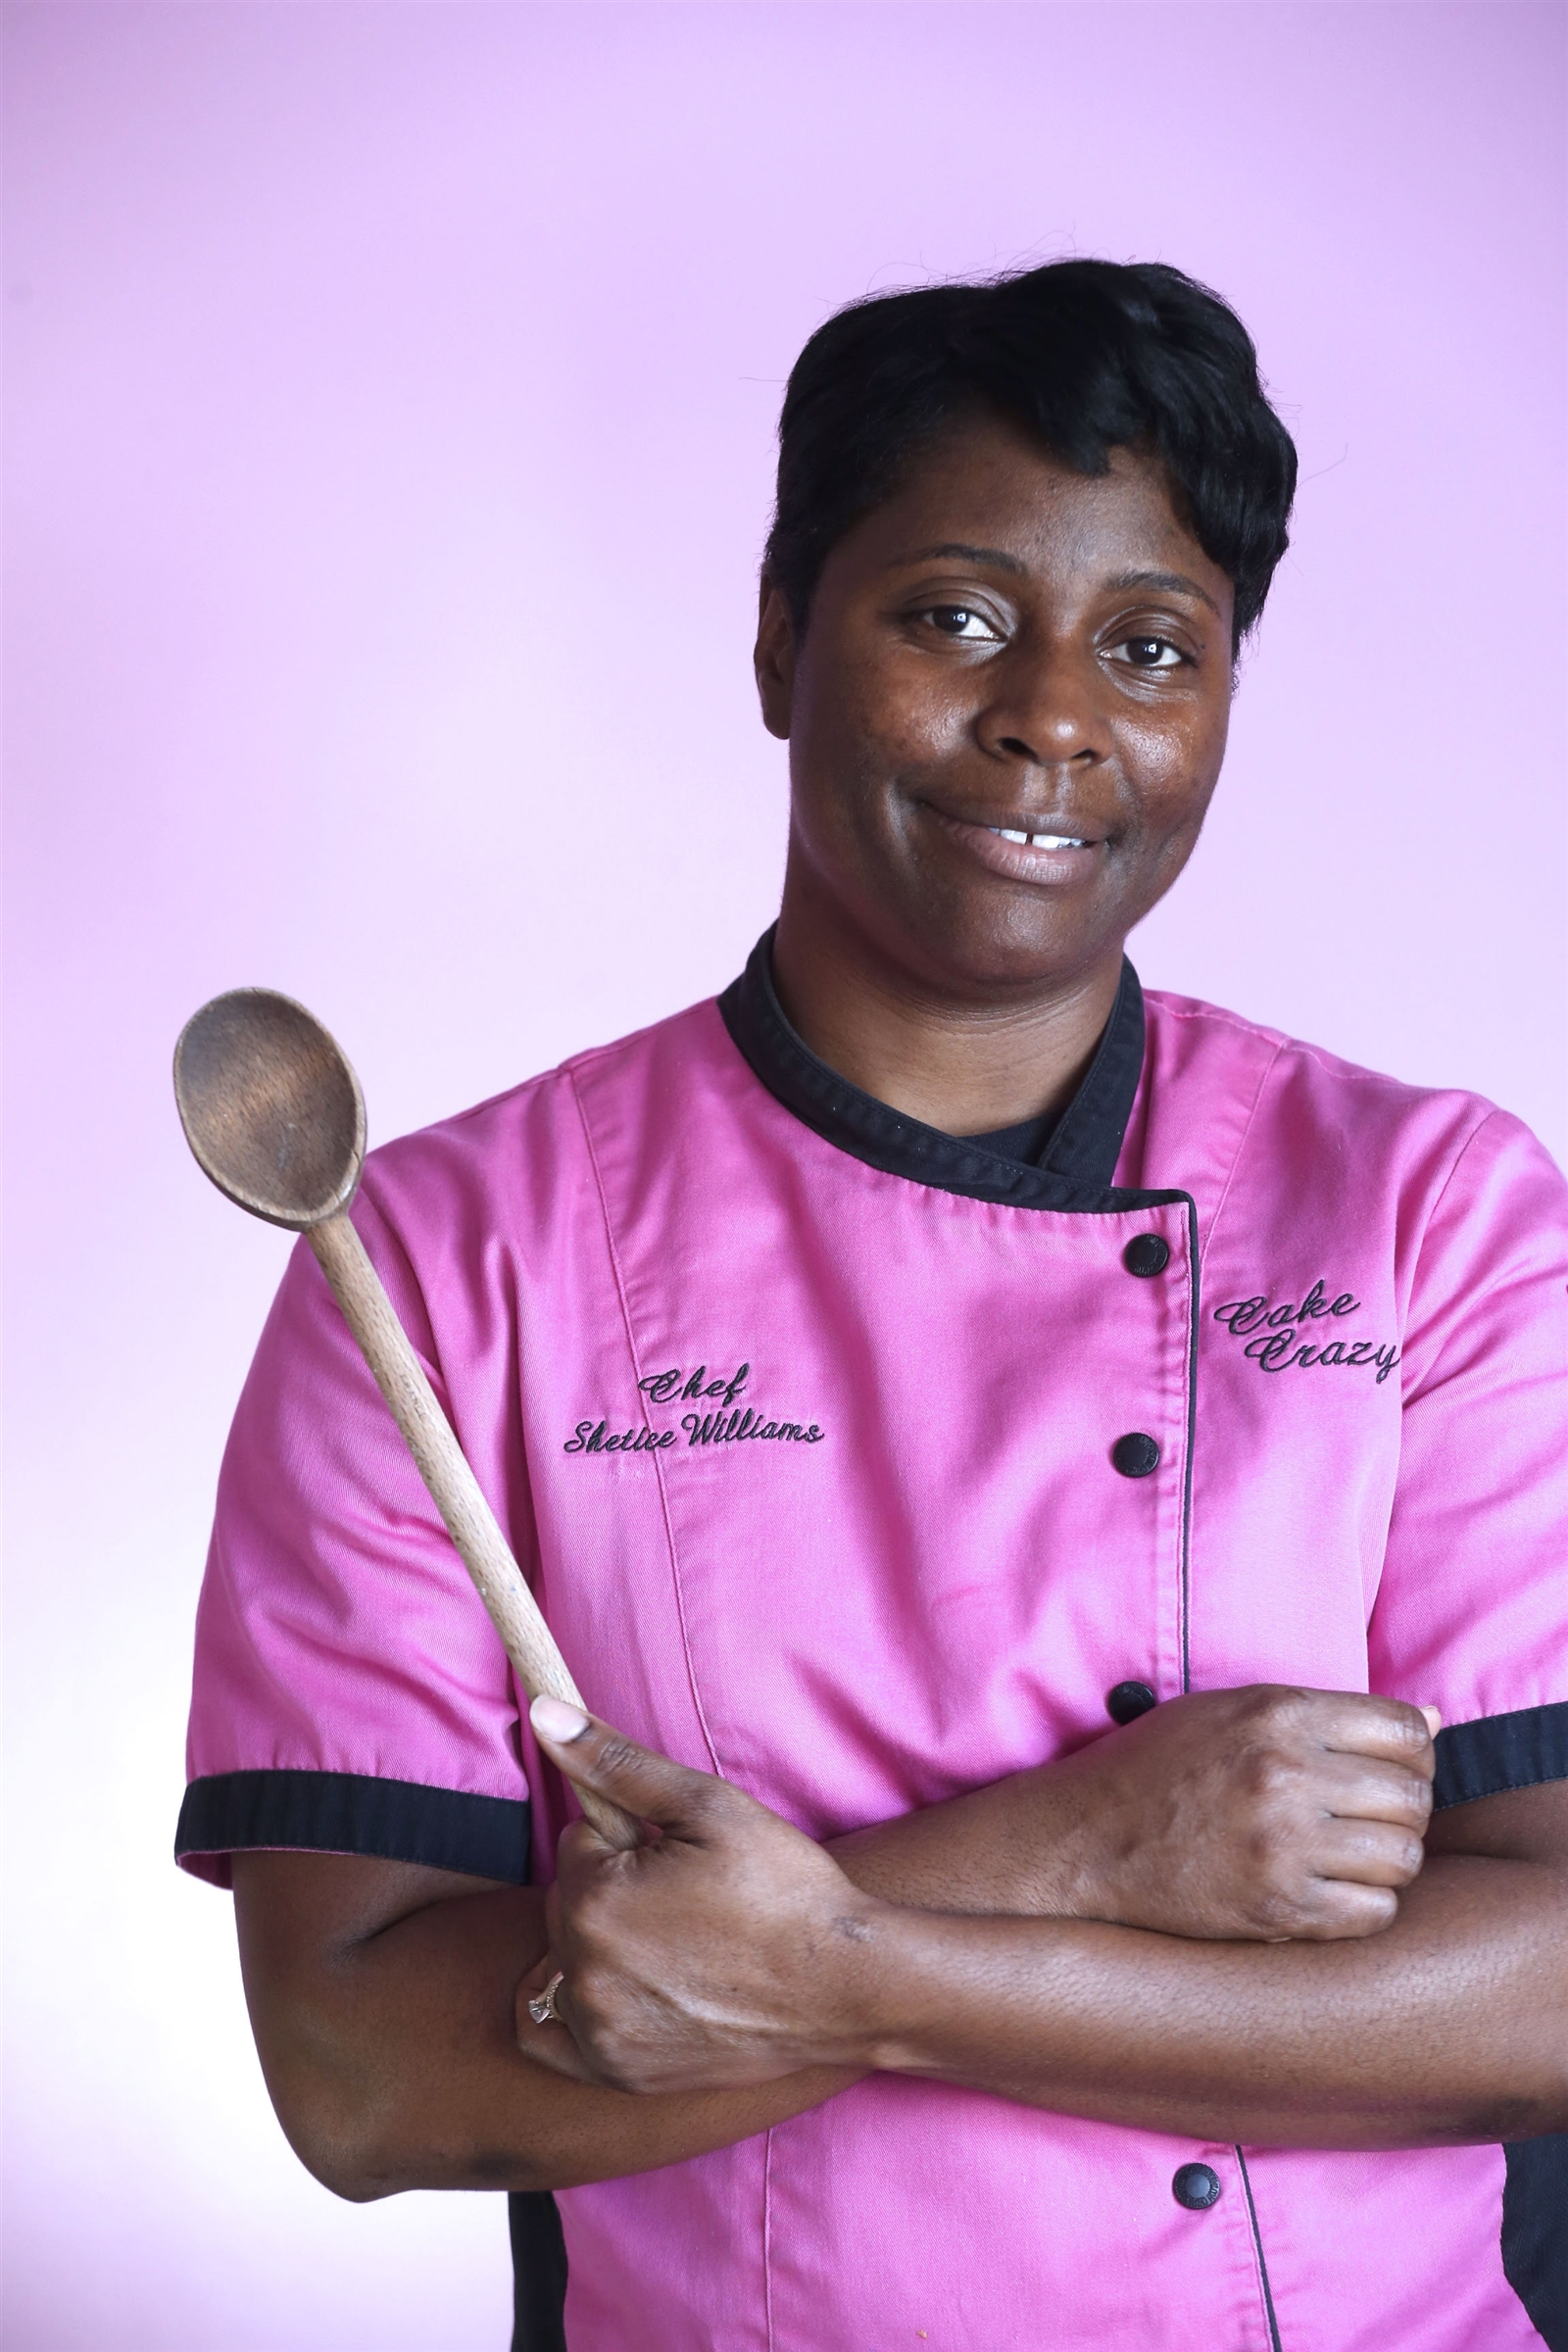 Shetice Williams is a graduate of the Culinary Institute of America and former employee of Walt Disneyu2019s Grand Floridian Resort and Emeril Lagasseu2019s New Orleans Fish House Restaurant in Las Vegas.